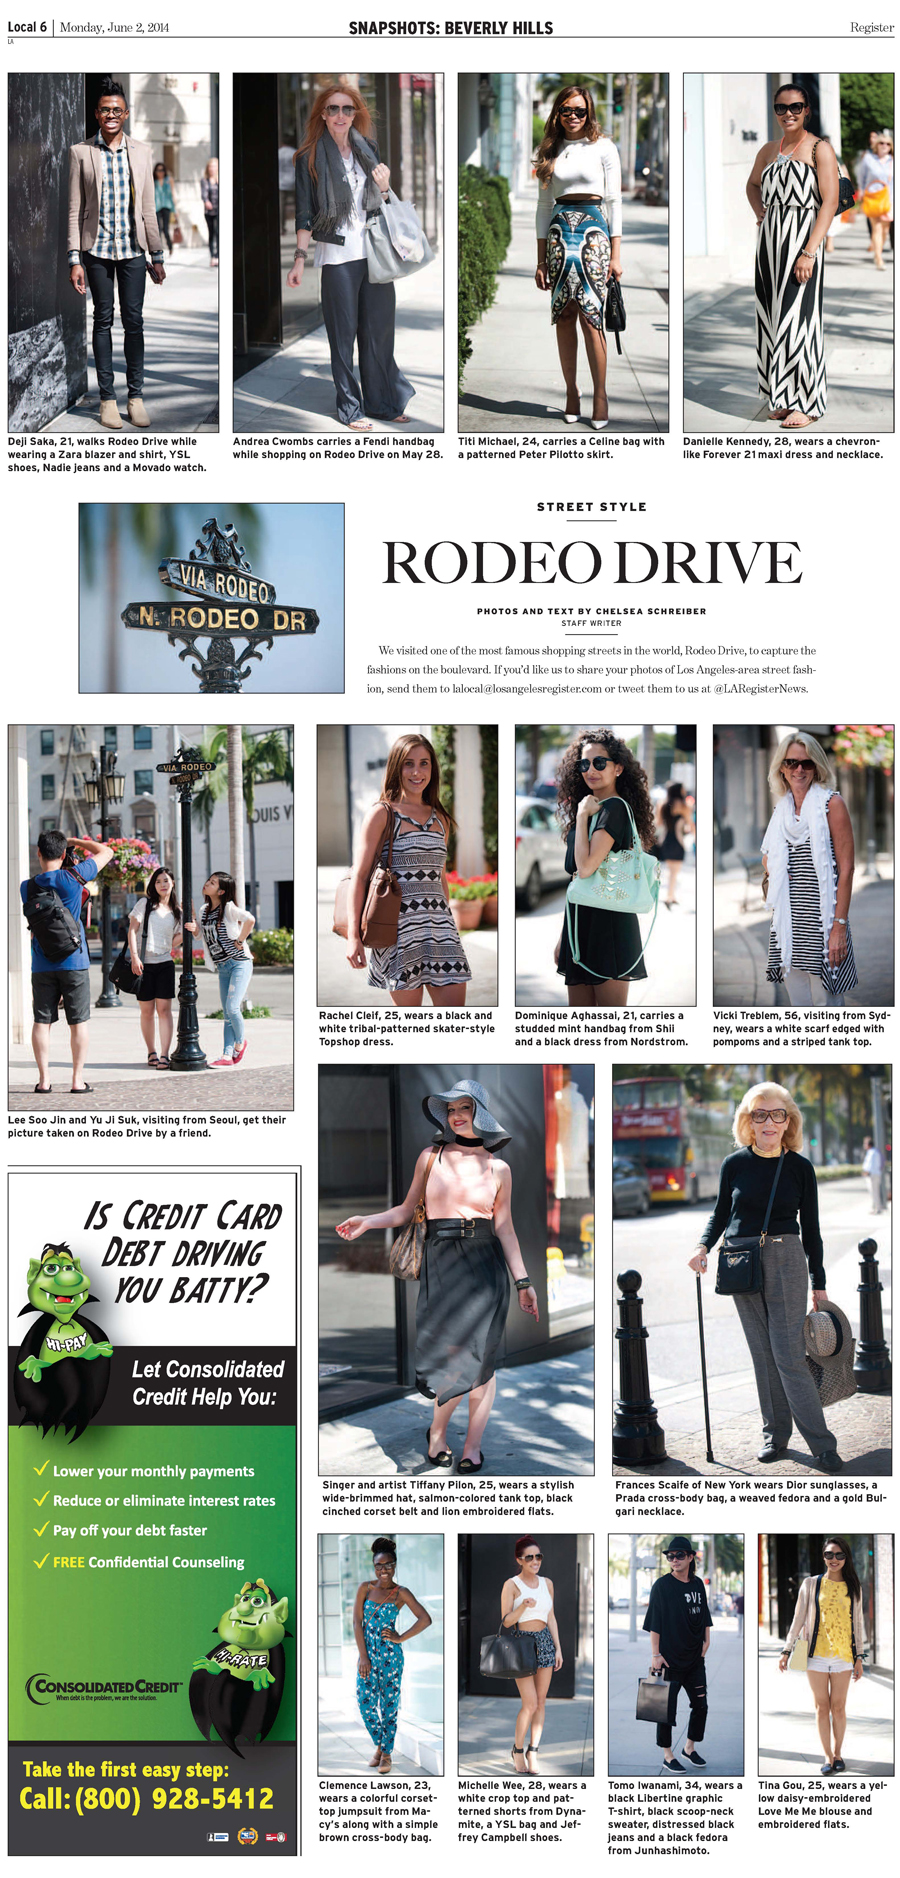 June 2 Los Angeles Register - Local section - Street Style on Rodeo Drive